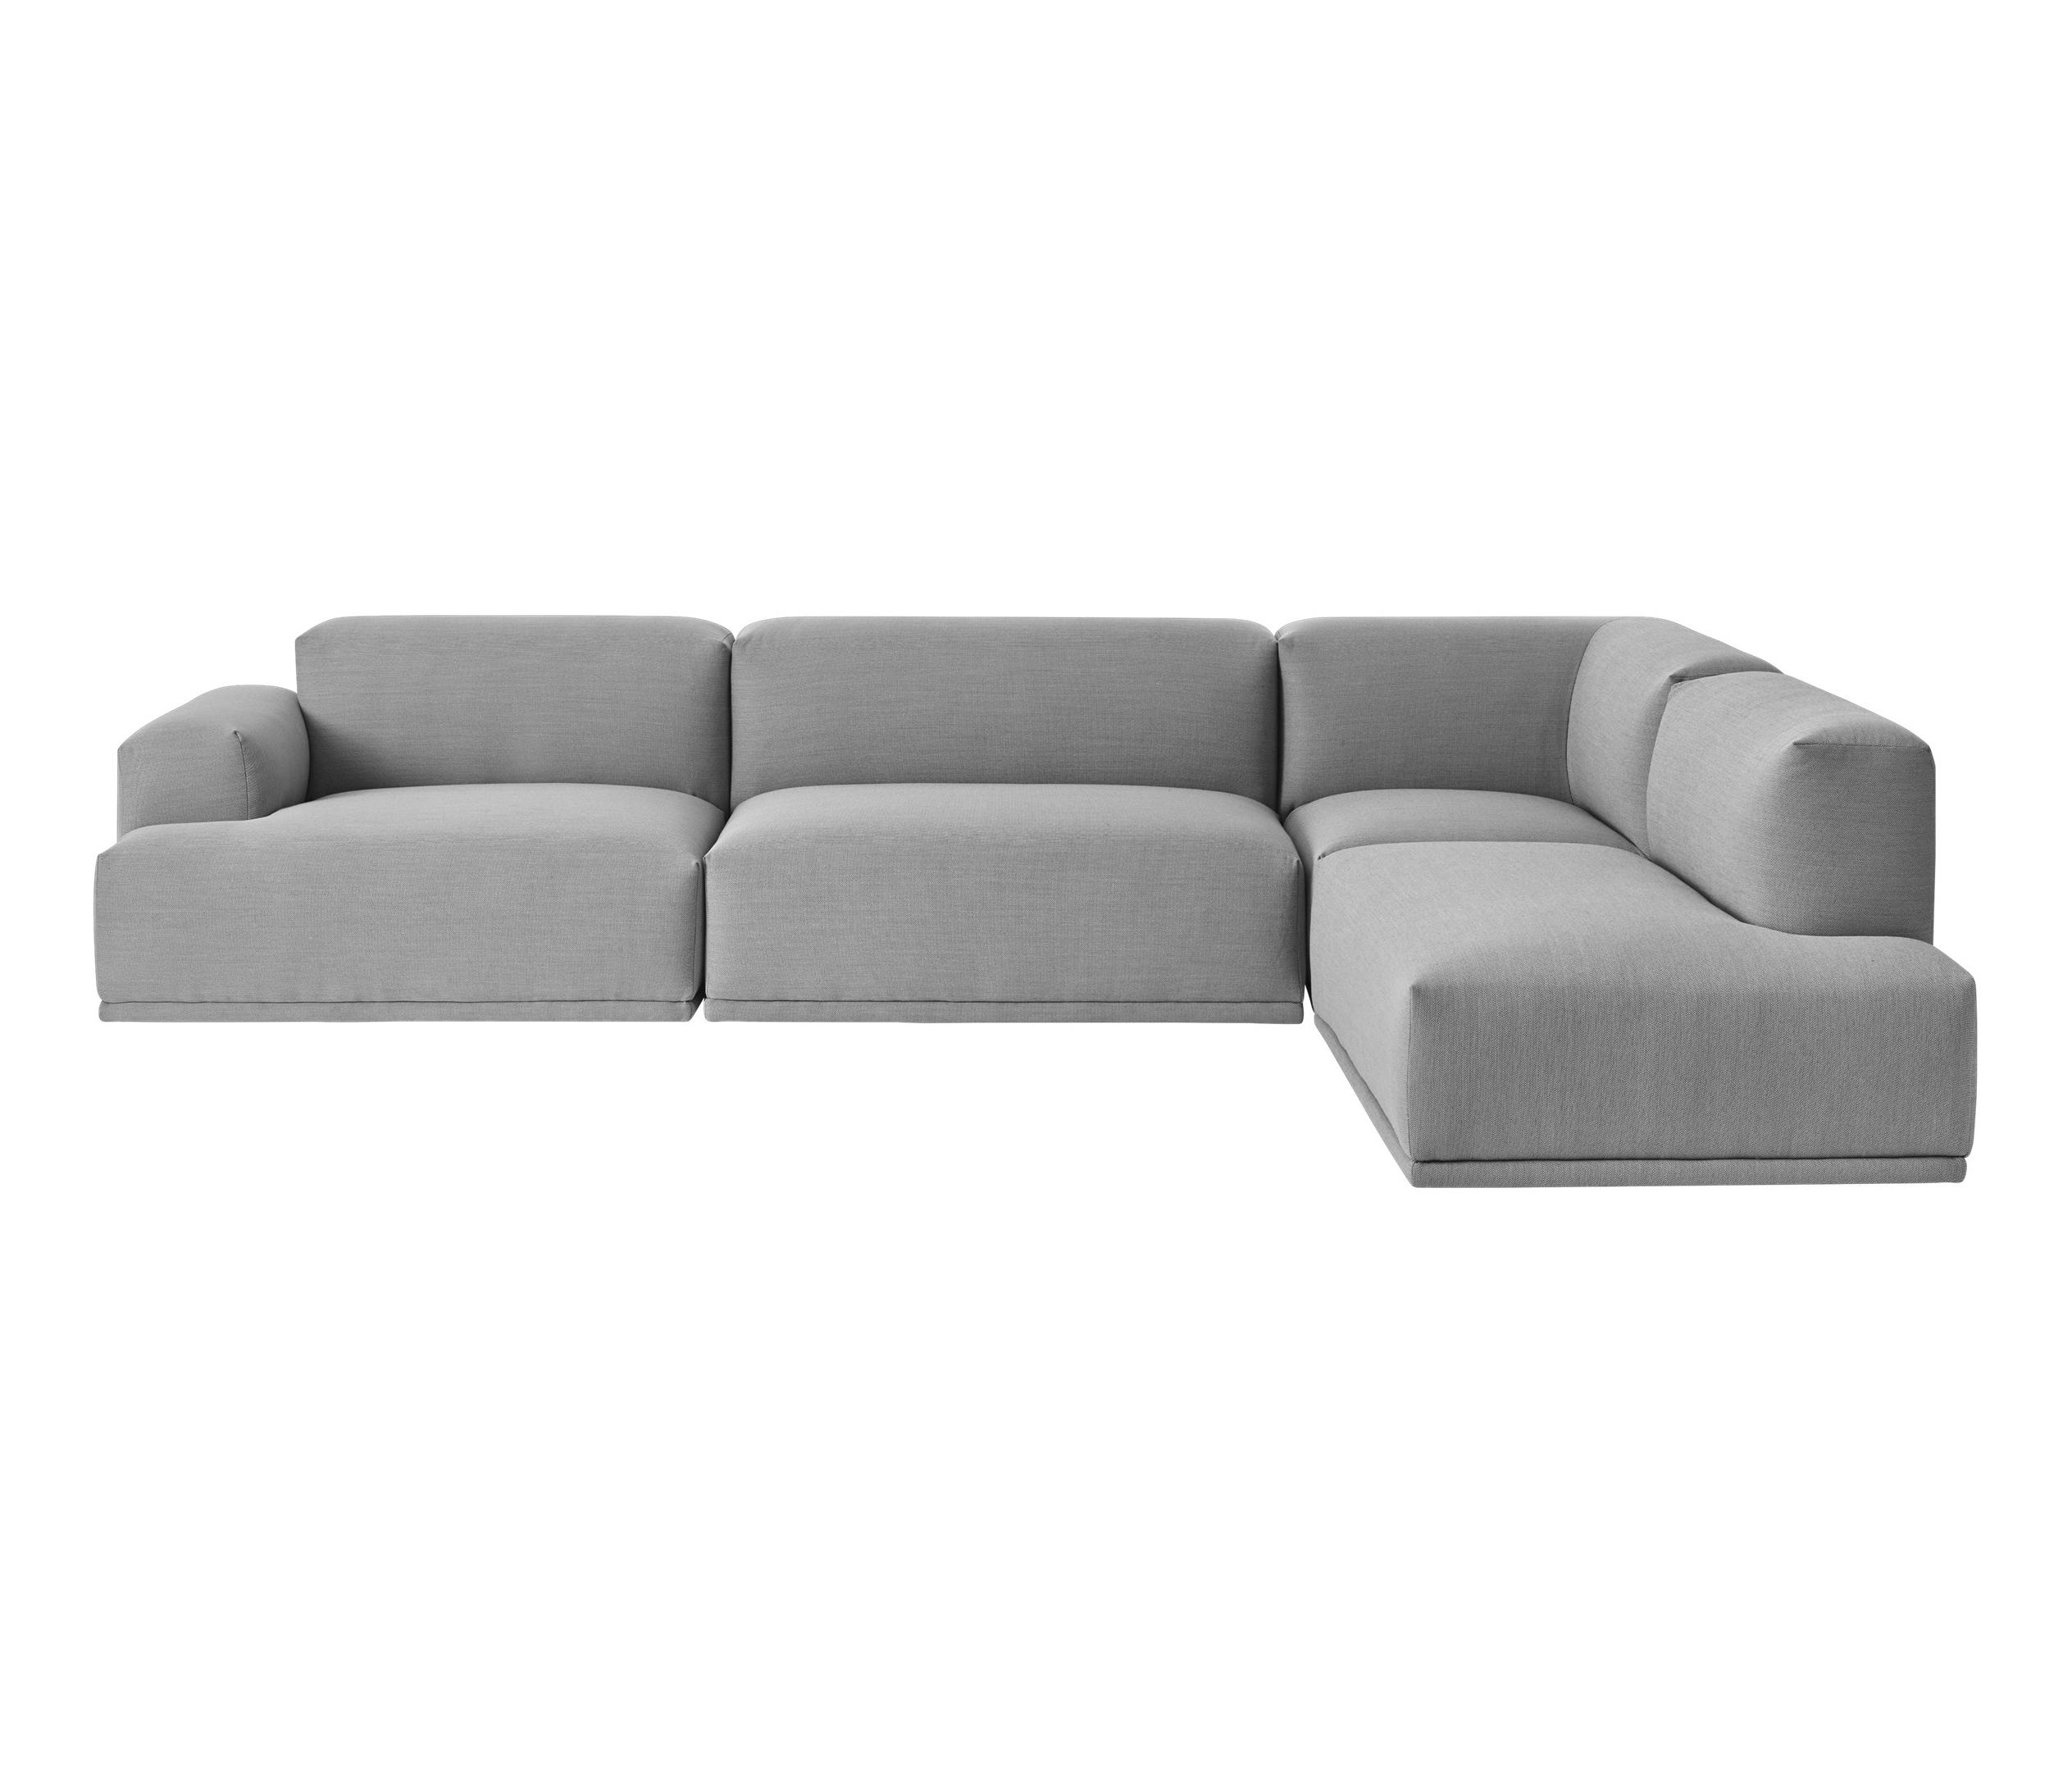 Connect Sofa 3 Seater Corner Sofas From Muuto Architonic